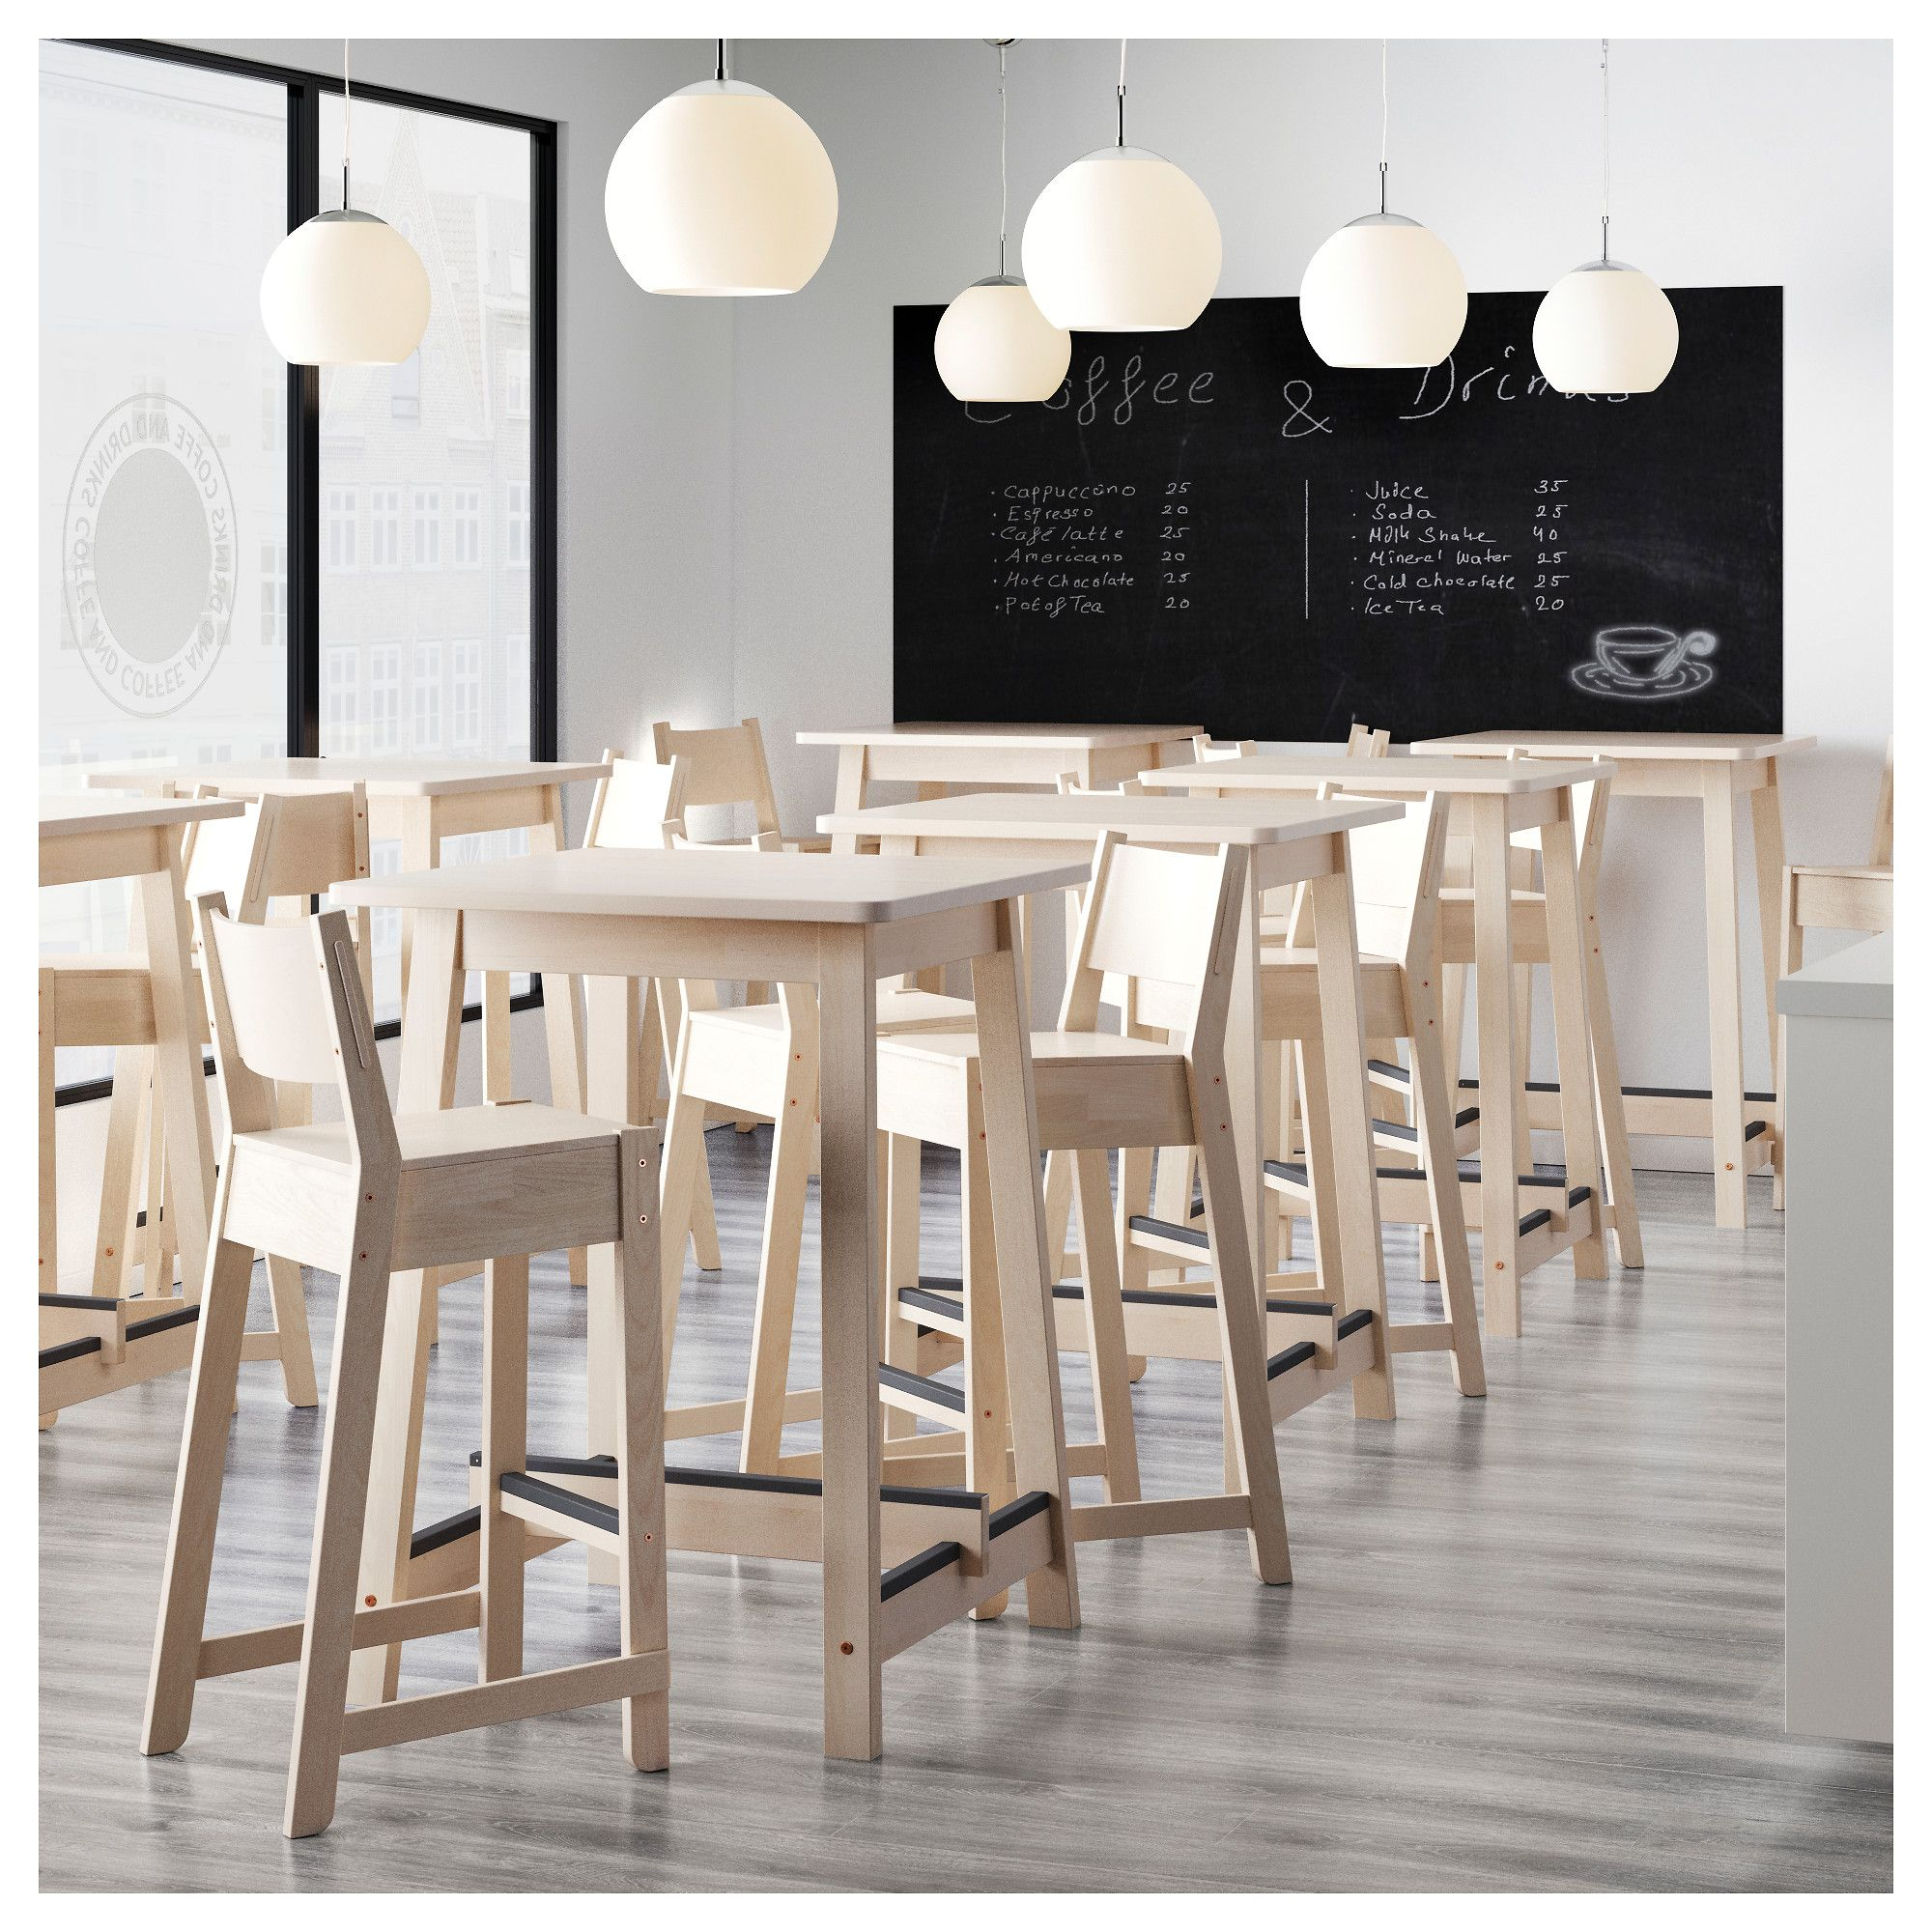 norr ker bar table white birch in 2018 products. Black Bedroom Furniture Sets. Home Design Ideas